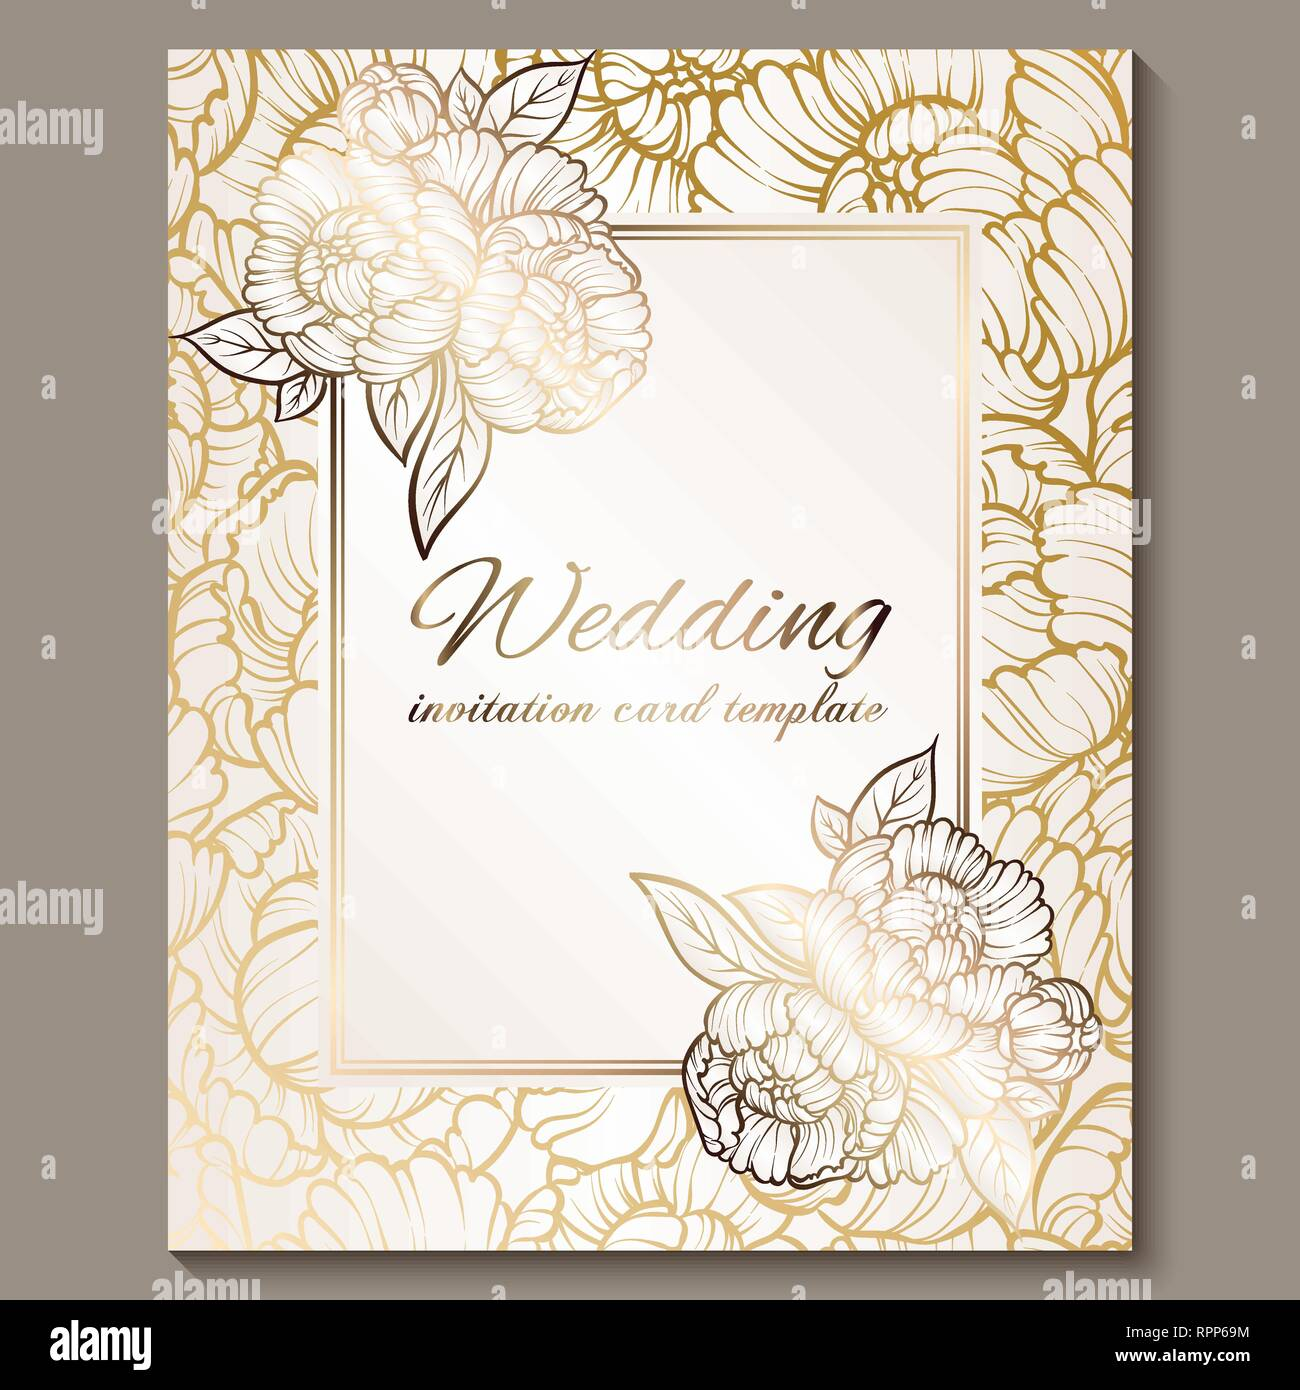 Antique Royal Luxury Wedding Invitation Gold On White Background With Frame And Place For Text Lacy Foliage Made Of Roses Or Peonies With Shiny Grad Stock Vector Image Art Alamy